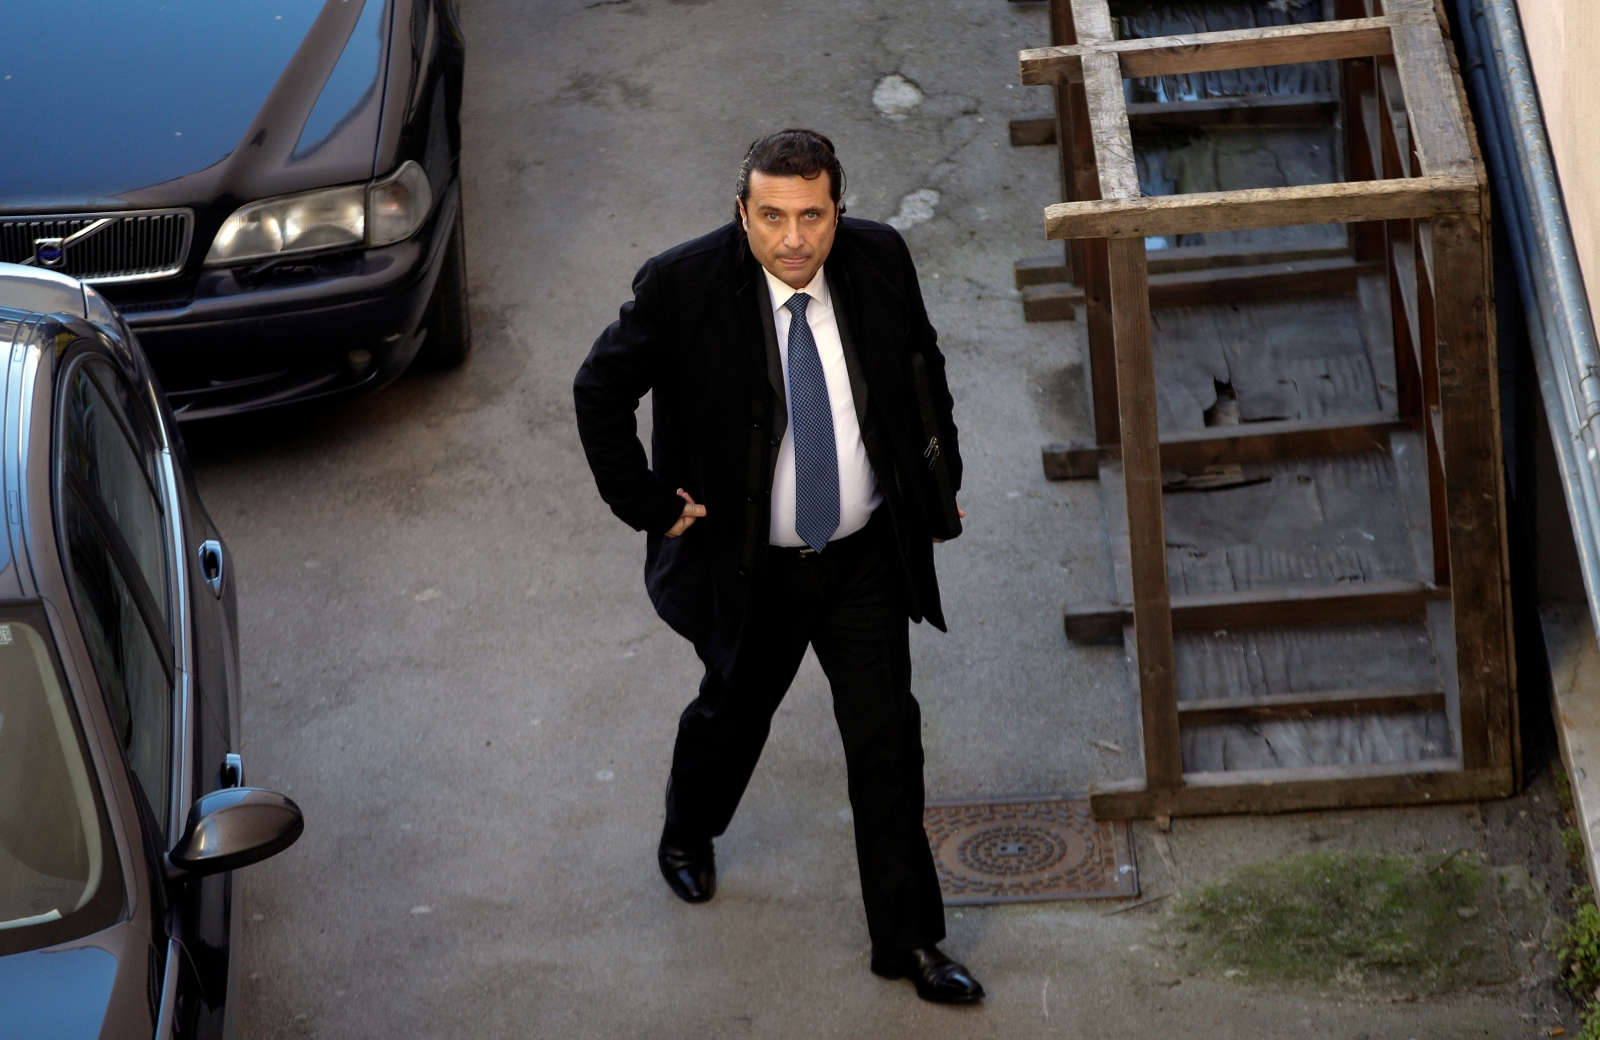 Francesco Schettino costa concordia captain court